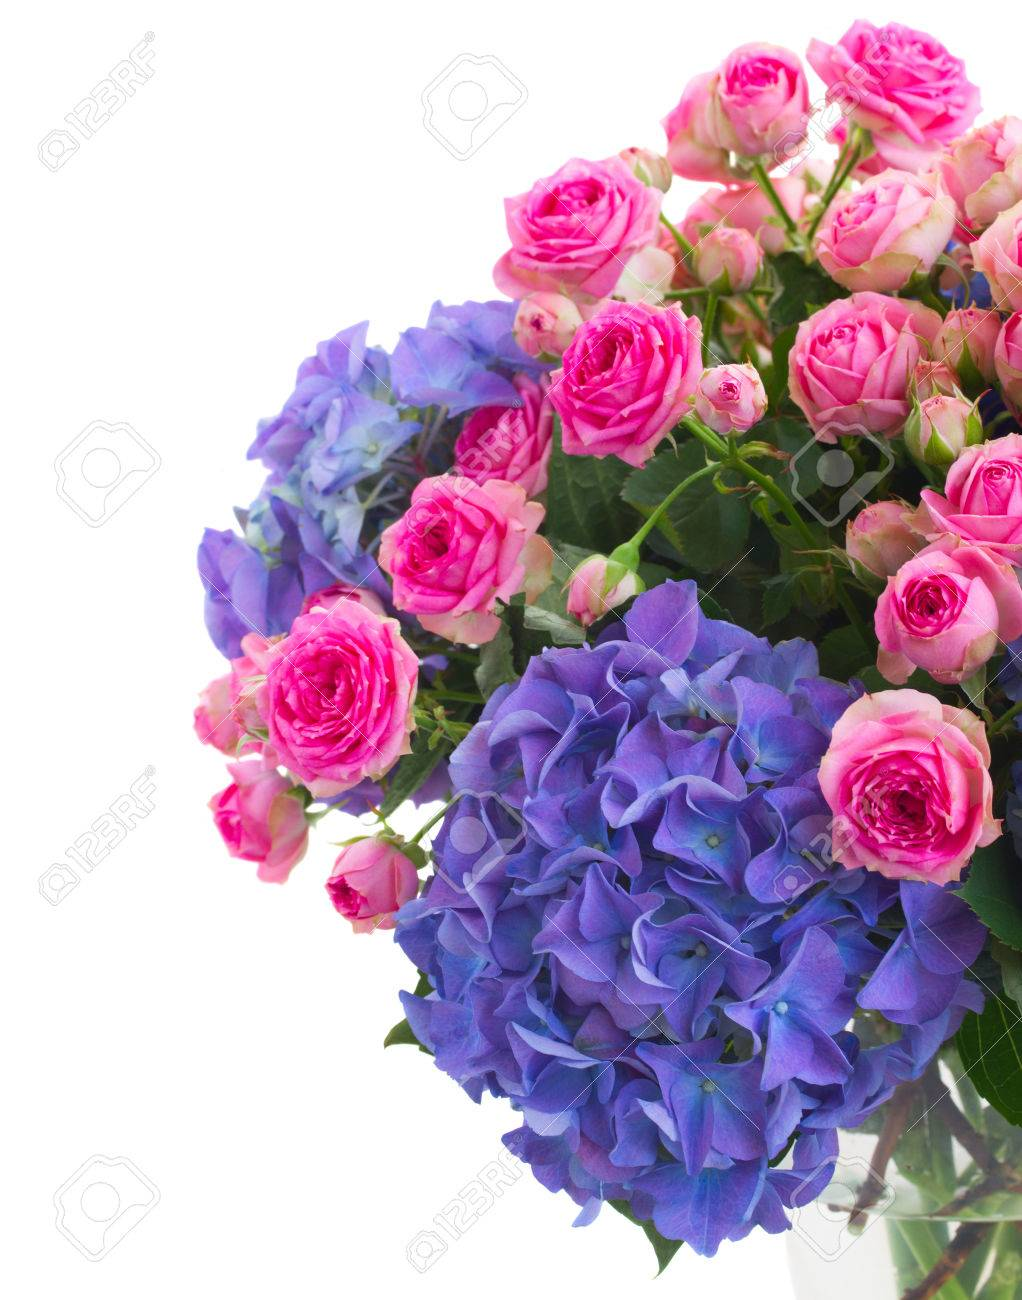 Bunch Of Pink Roses And Blue Hortenzia Flowers Close Up Isolated